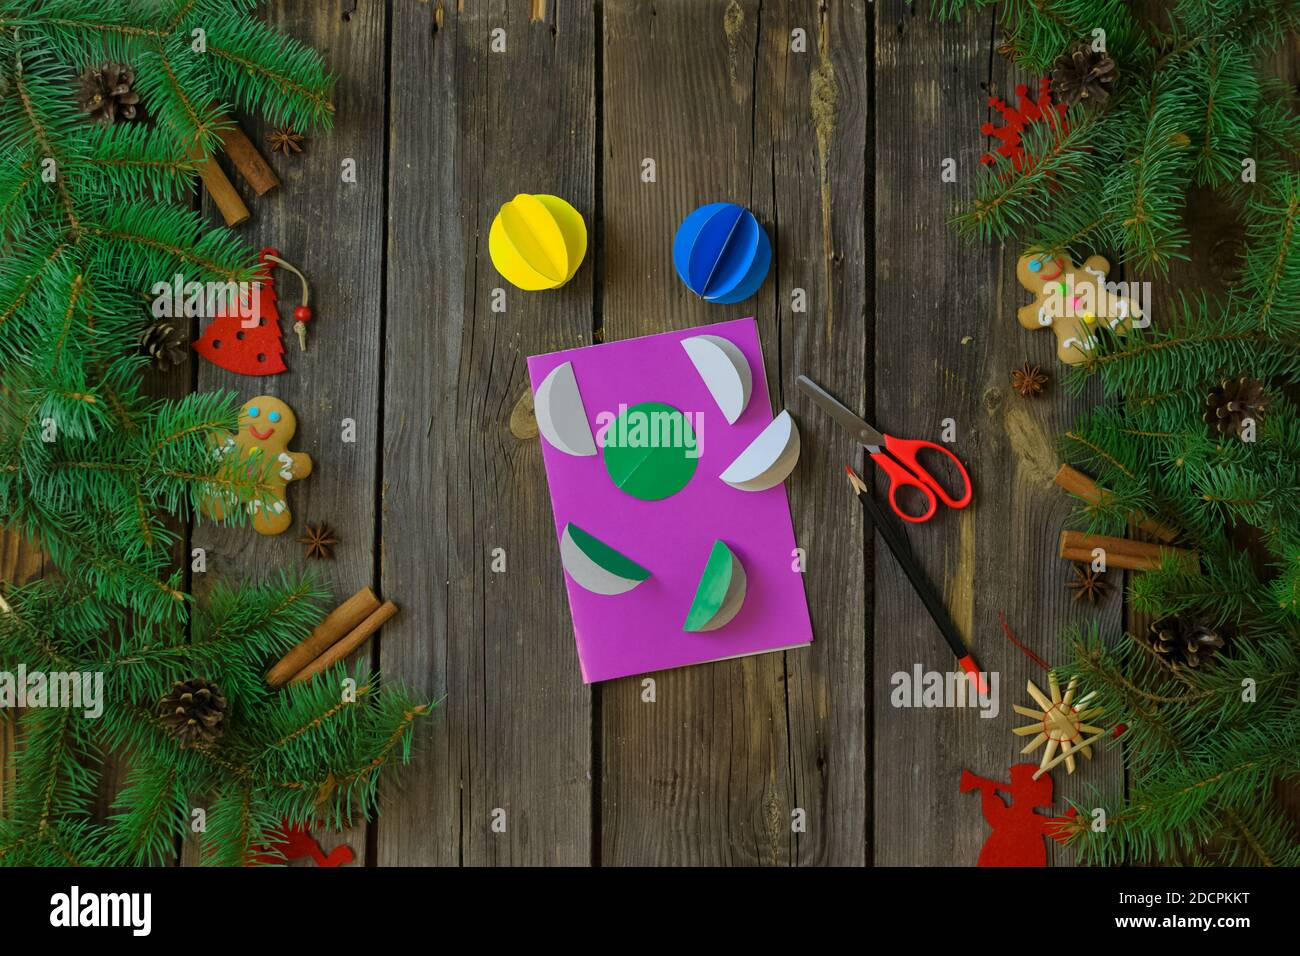 Diy Christmas And Happy New Year Greeting Card On A Wooden Table With Tree Branches Christmas Instructions Decorations Children S Creativity Stock Photo Alamy